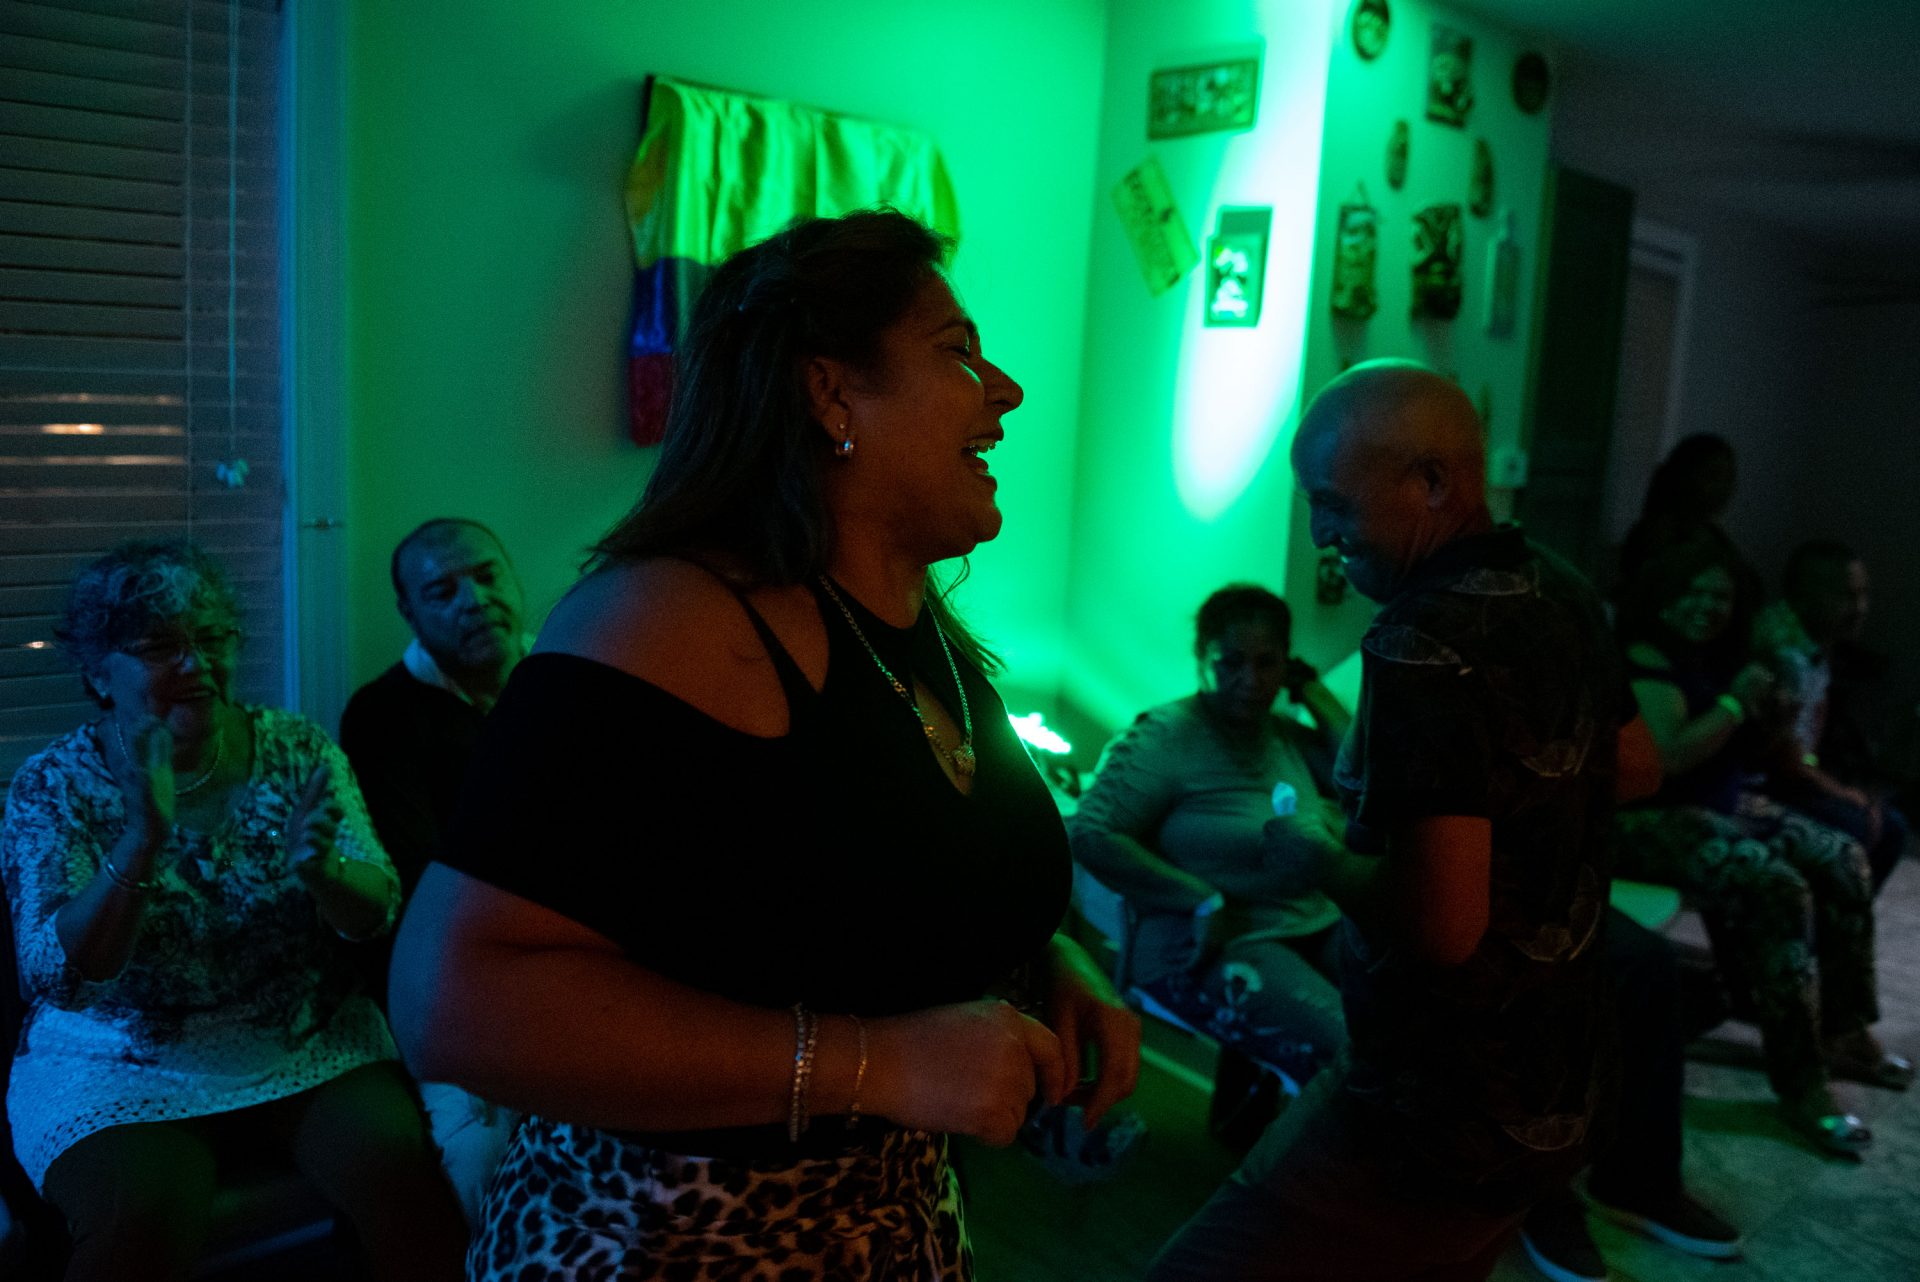 Einar Victoria is seen dancing with Liliana Acero through the front entrance of an Oxford Circle home-turned-viejoteca on Sunday, September 15, 2019.